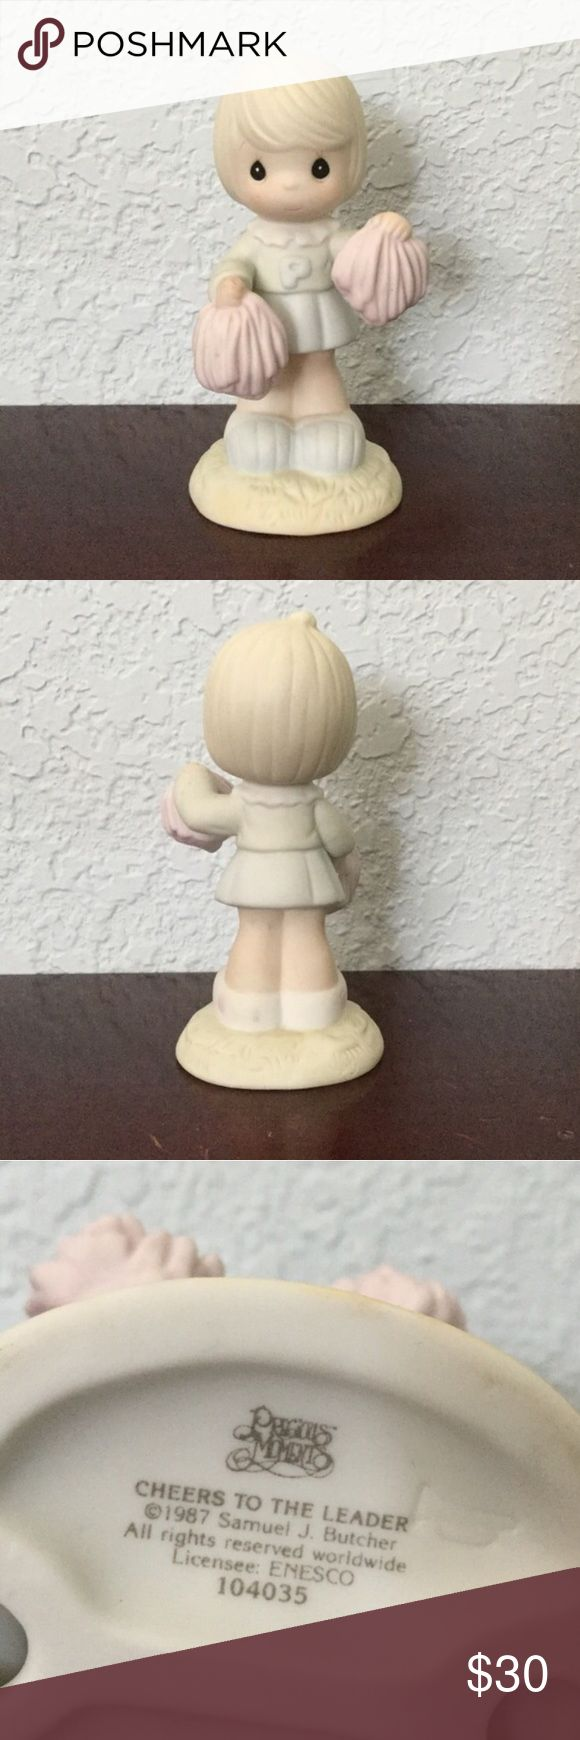 """Precious Moments Precious Moments cheerleader statue. """" Cheers to the Leader """" @1987. Box not included.  ✓ NO Trades / Merc / PP / etc. ✓ Offers welcome ✓ Bundle discounts available ✓ Top 10% seller ✓ Most orders shipped within two days - never longer than five days Precious Moments Other"""